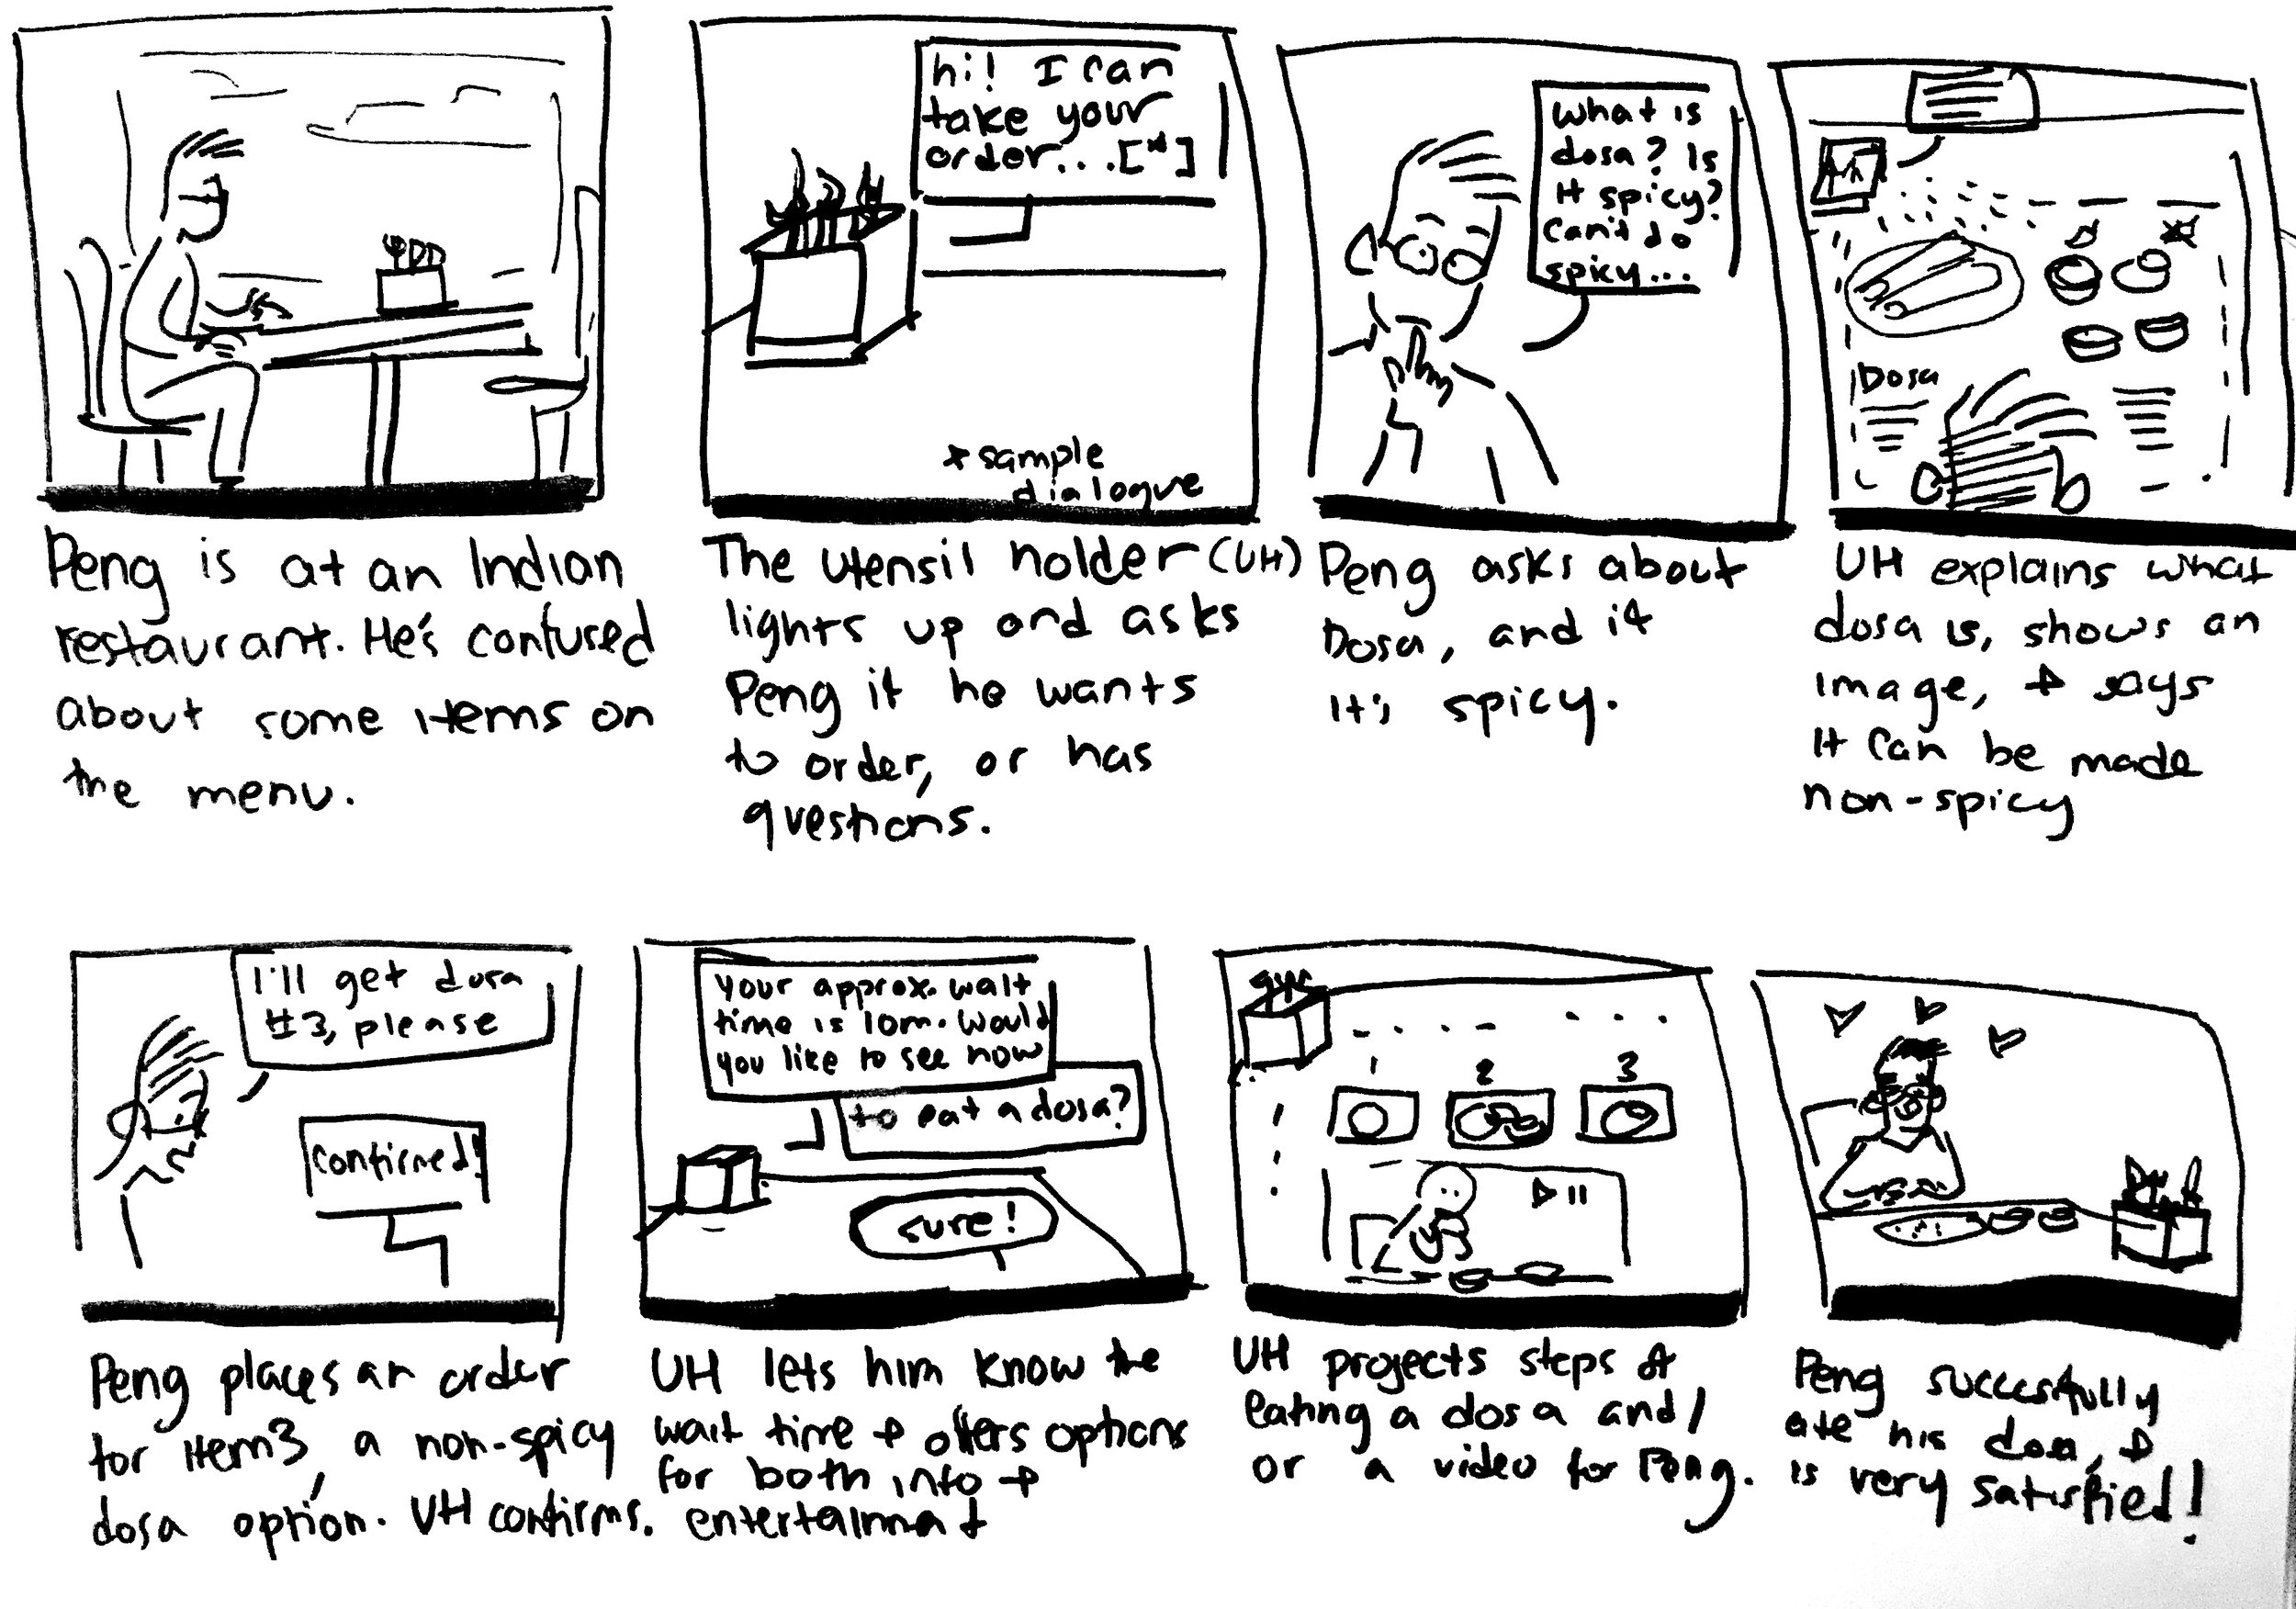 Storyboard (ideated by team, drawn by me)